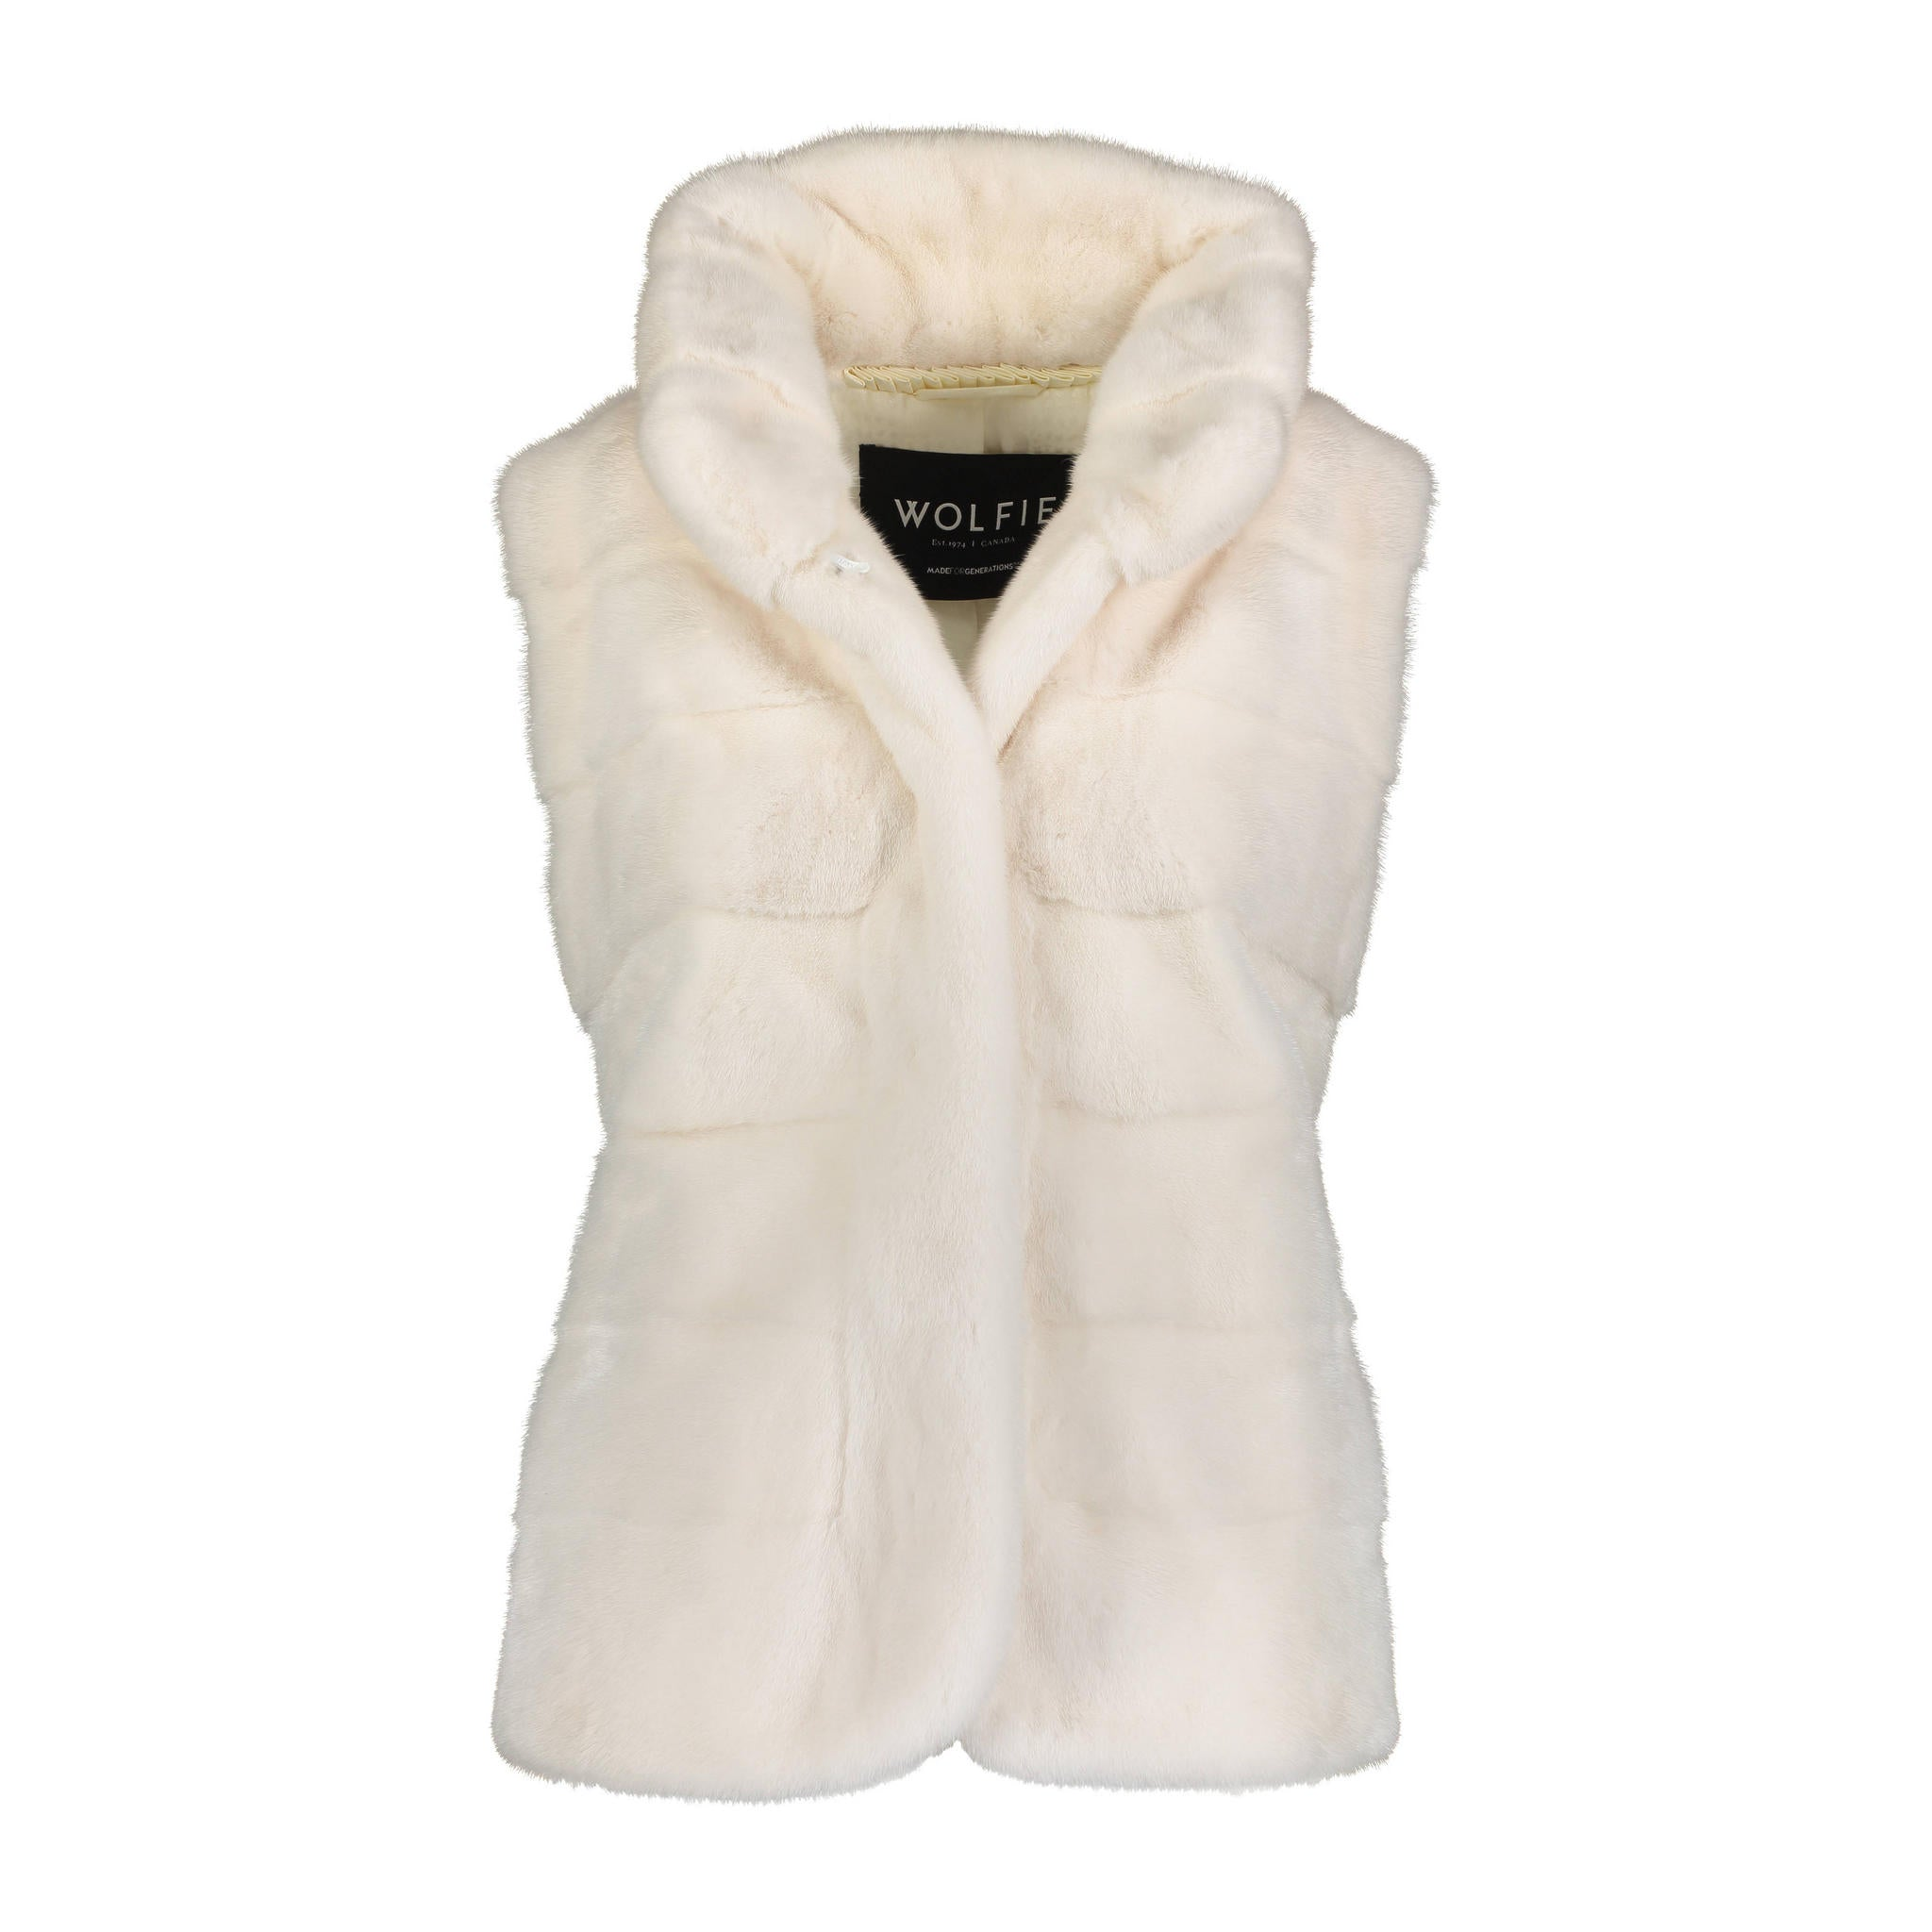 Karina rex rabbit Fur Vest